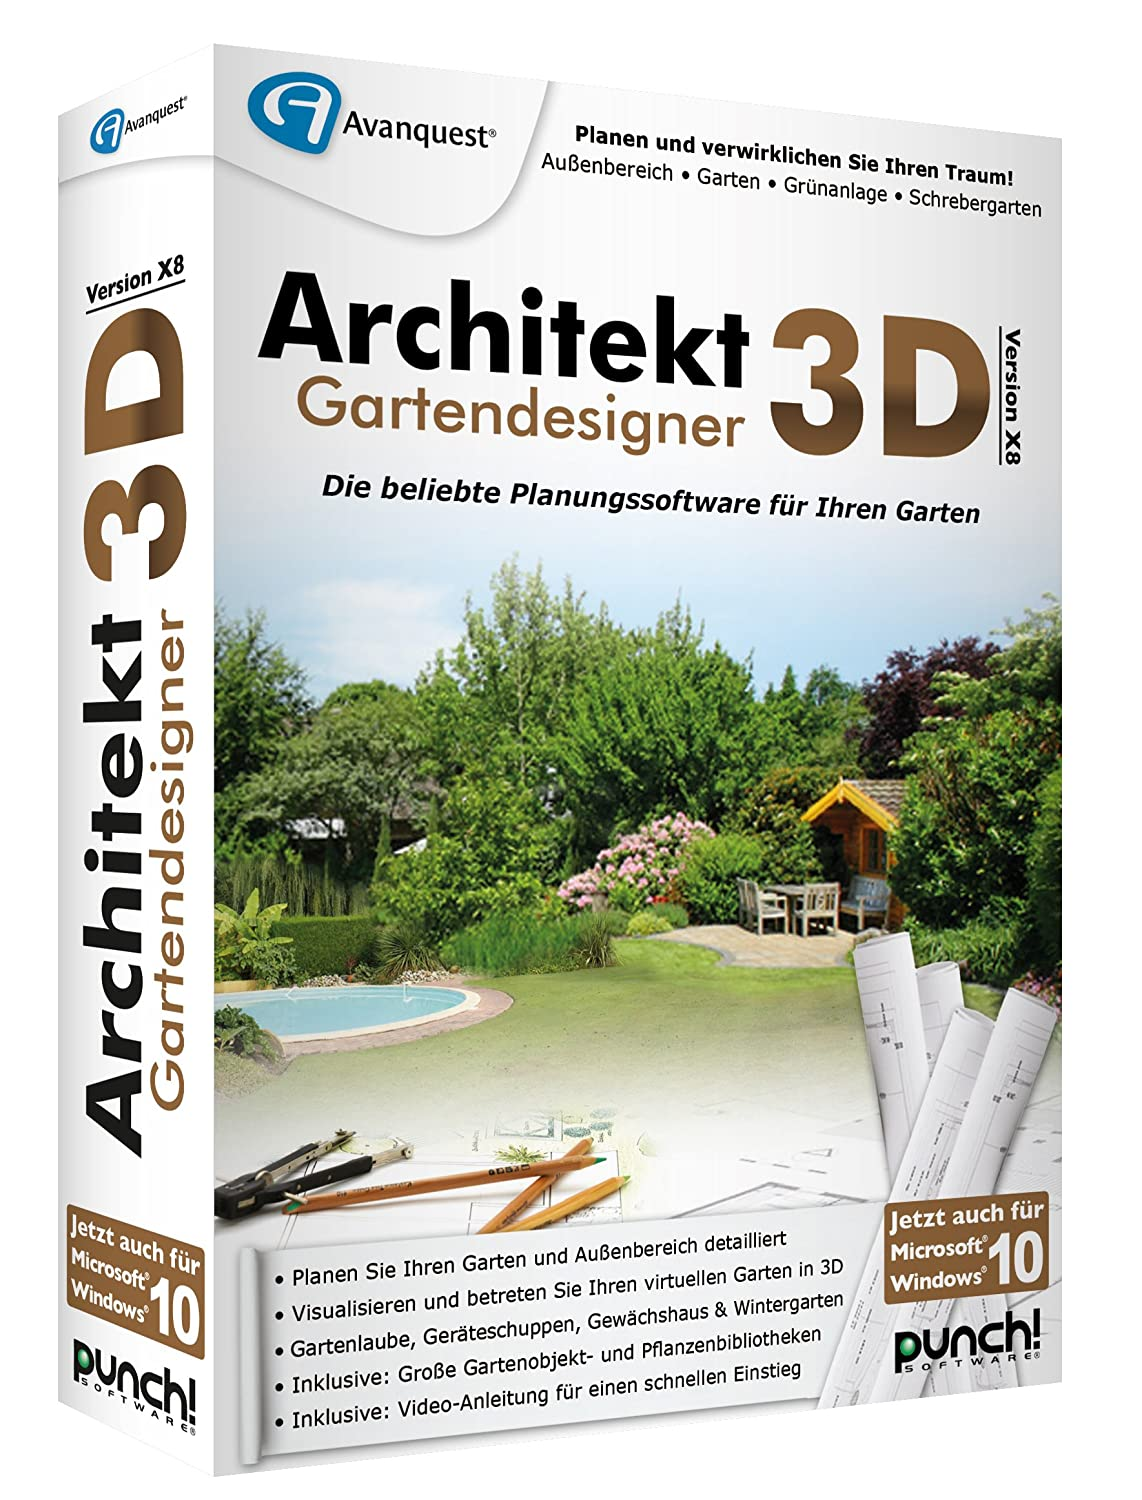 Architekt 3D X8 Gartendesigner: Amazon.de: Software